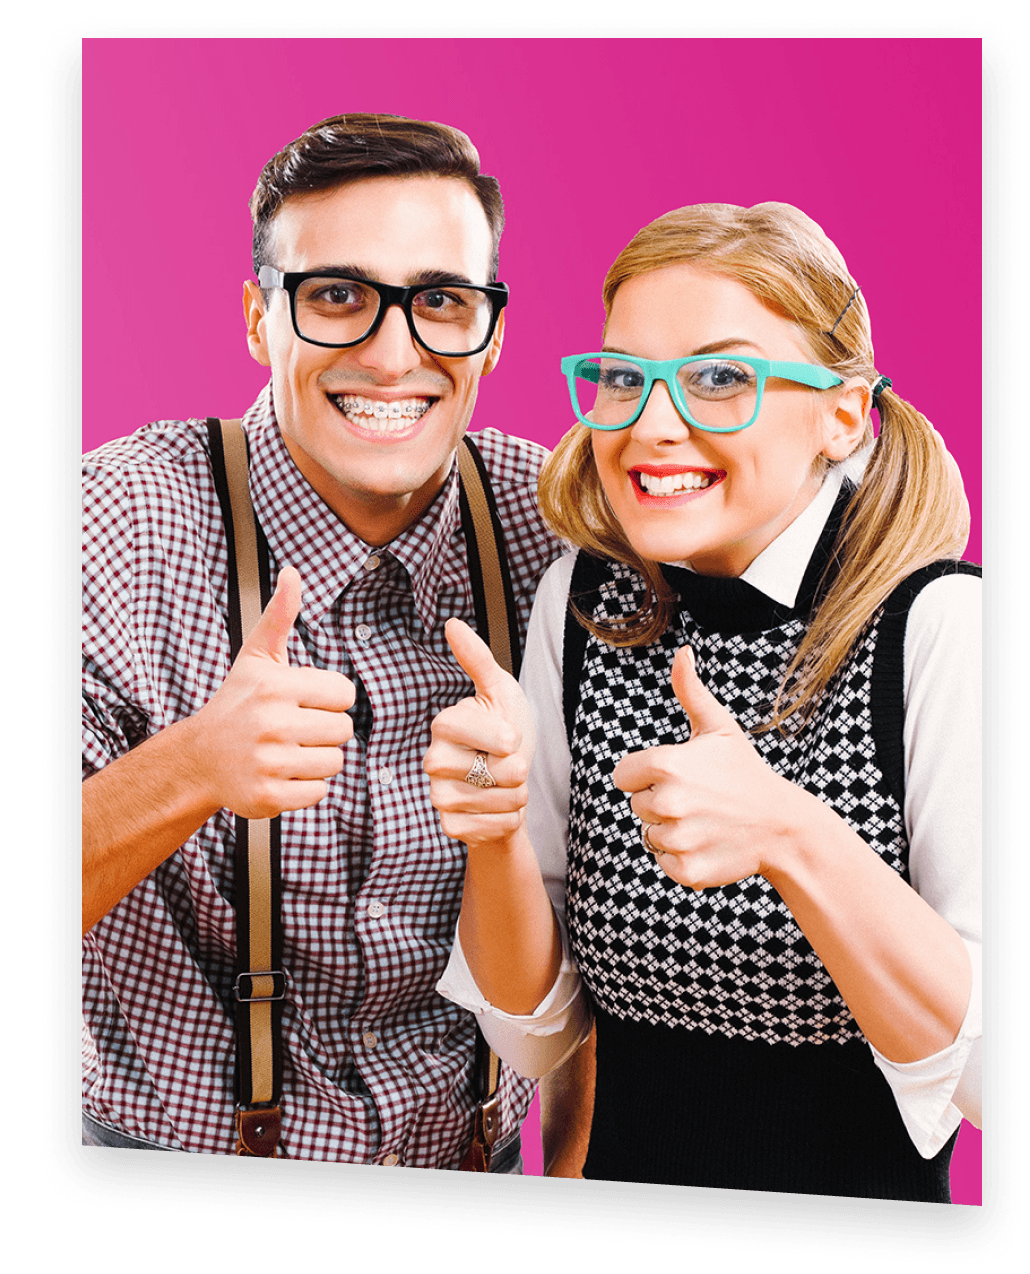 Two intellectual shmoop students giving thumbs up with smiling faces